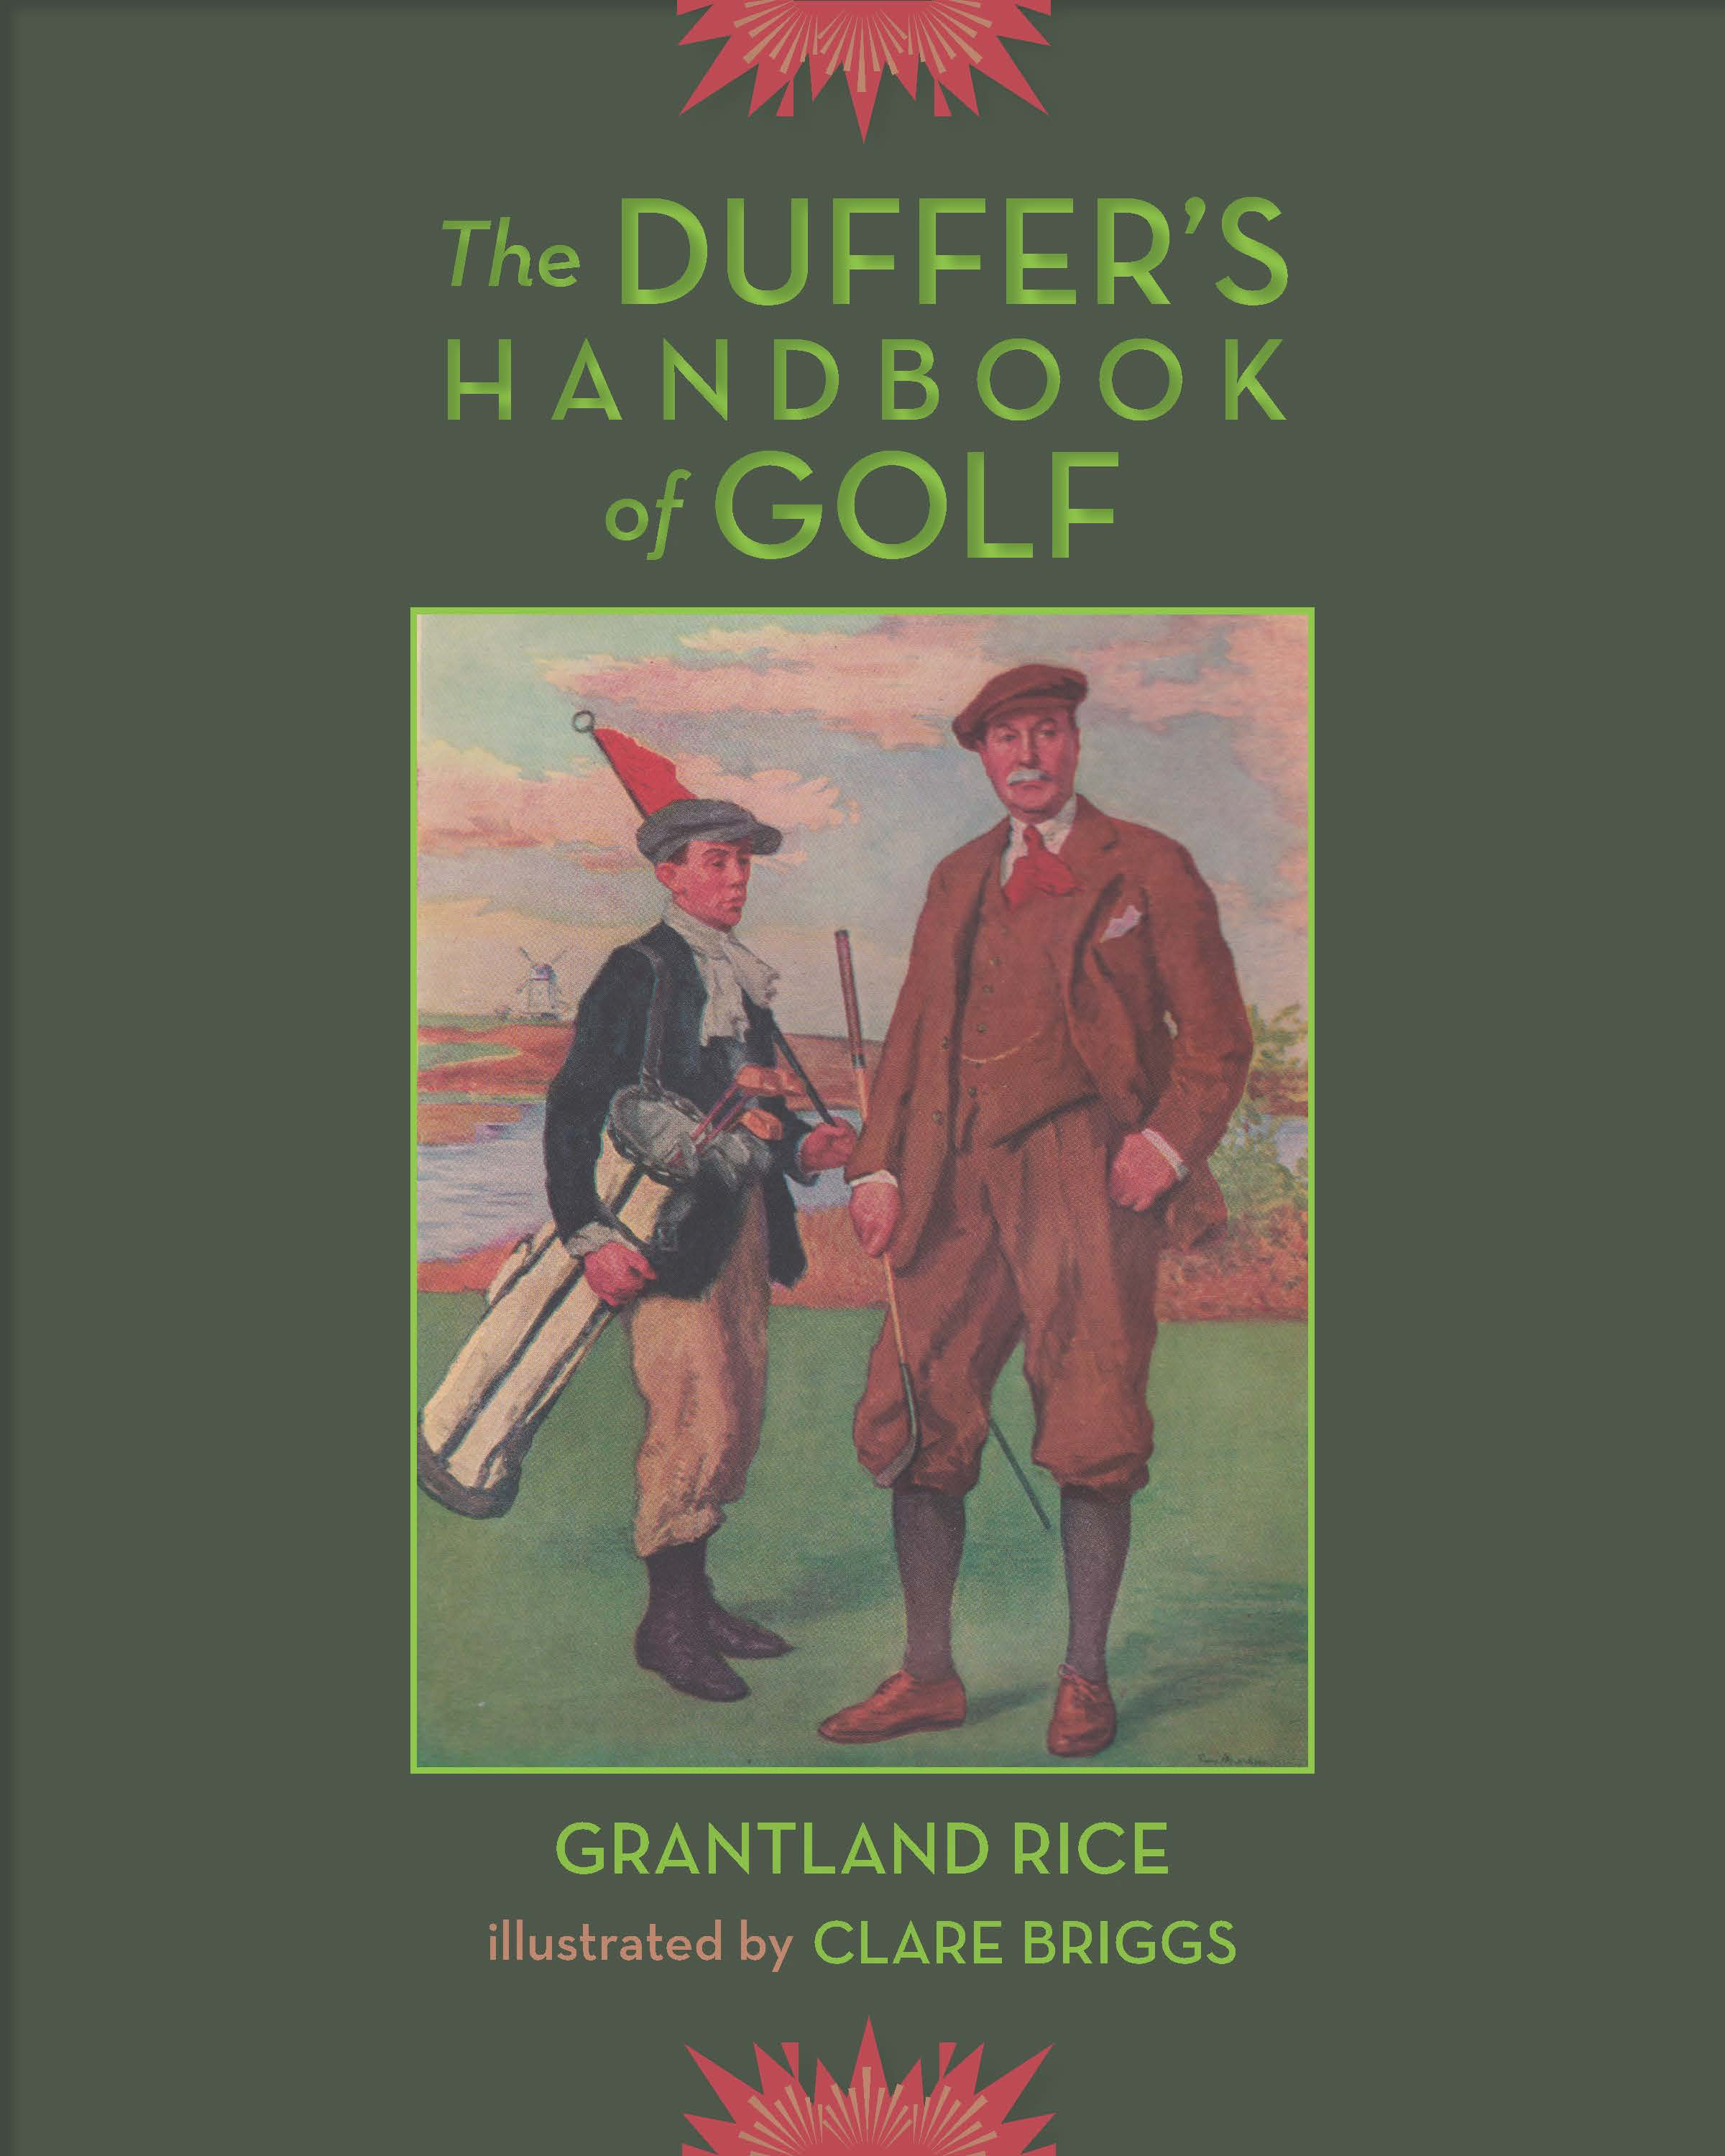 The Duffer's Handbook of Golf